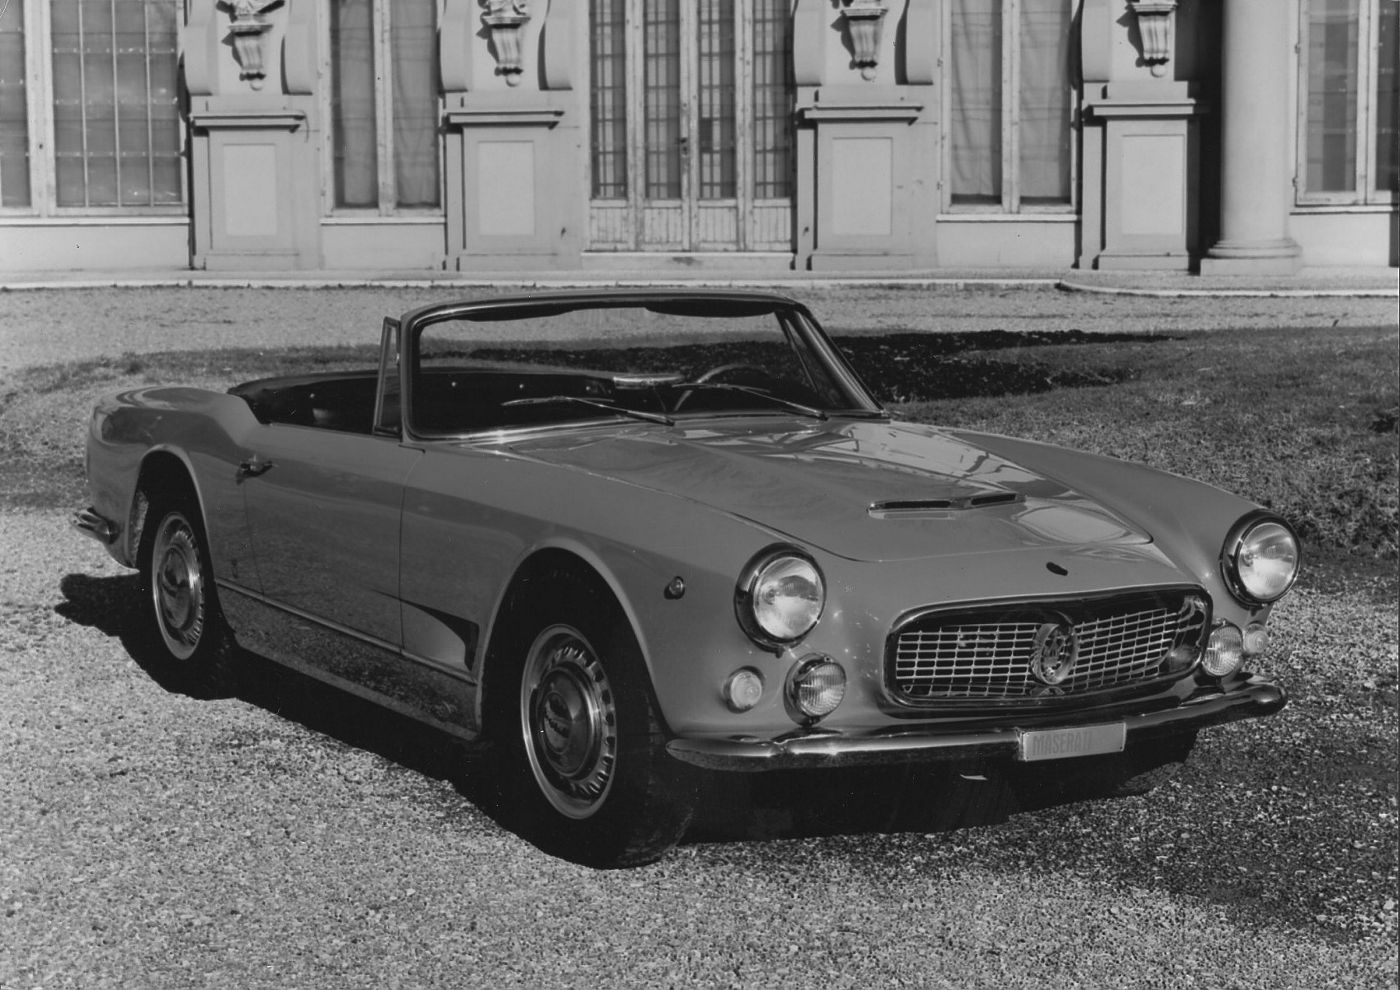 1958 Maserati 3500GT Spyder - the classic open-top GranTurismo